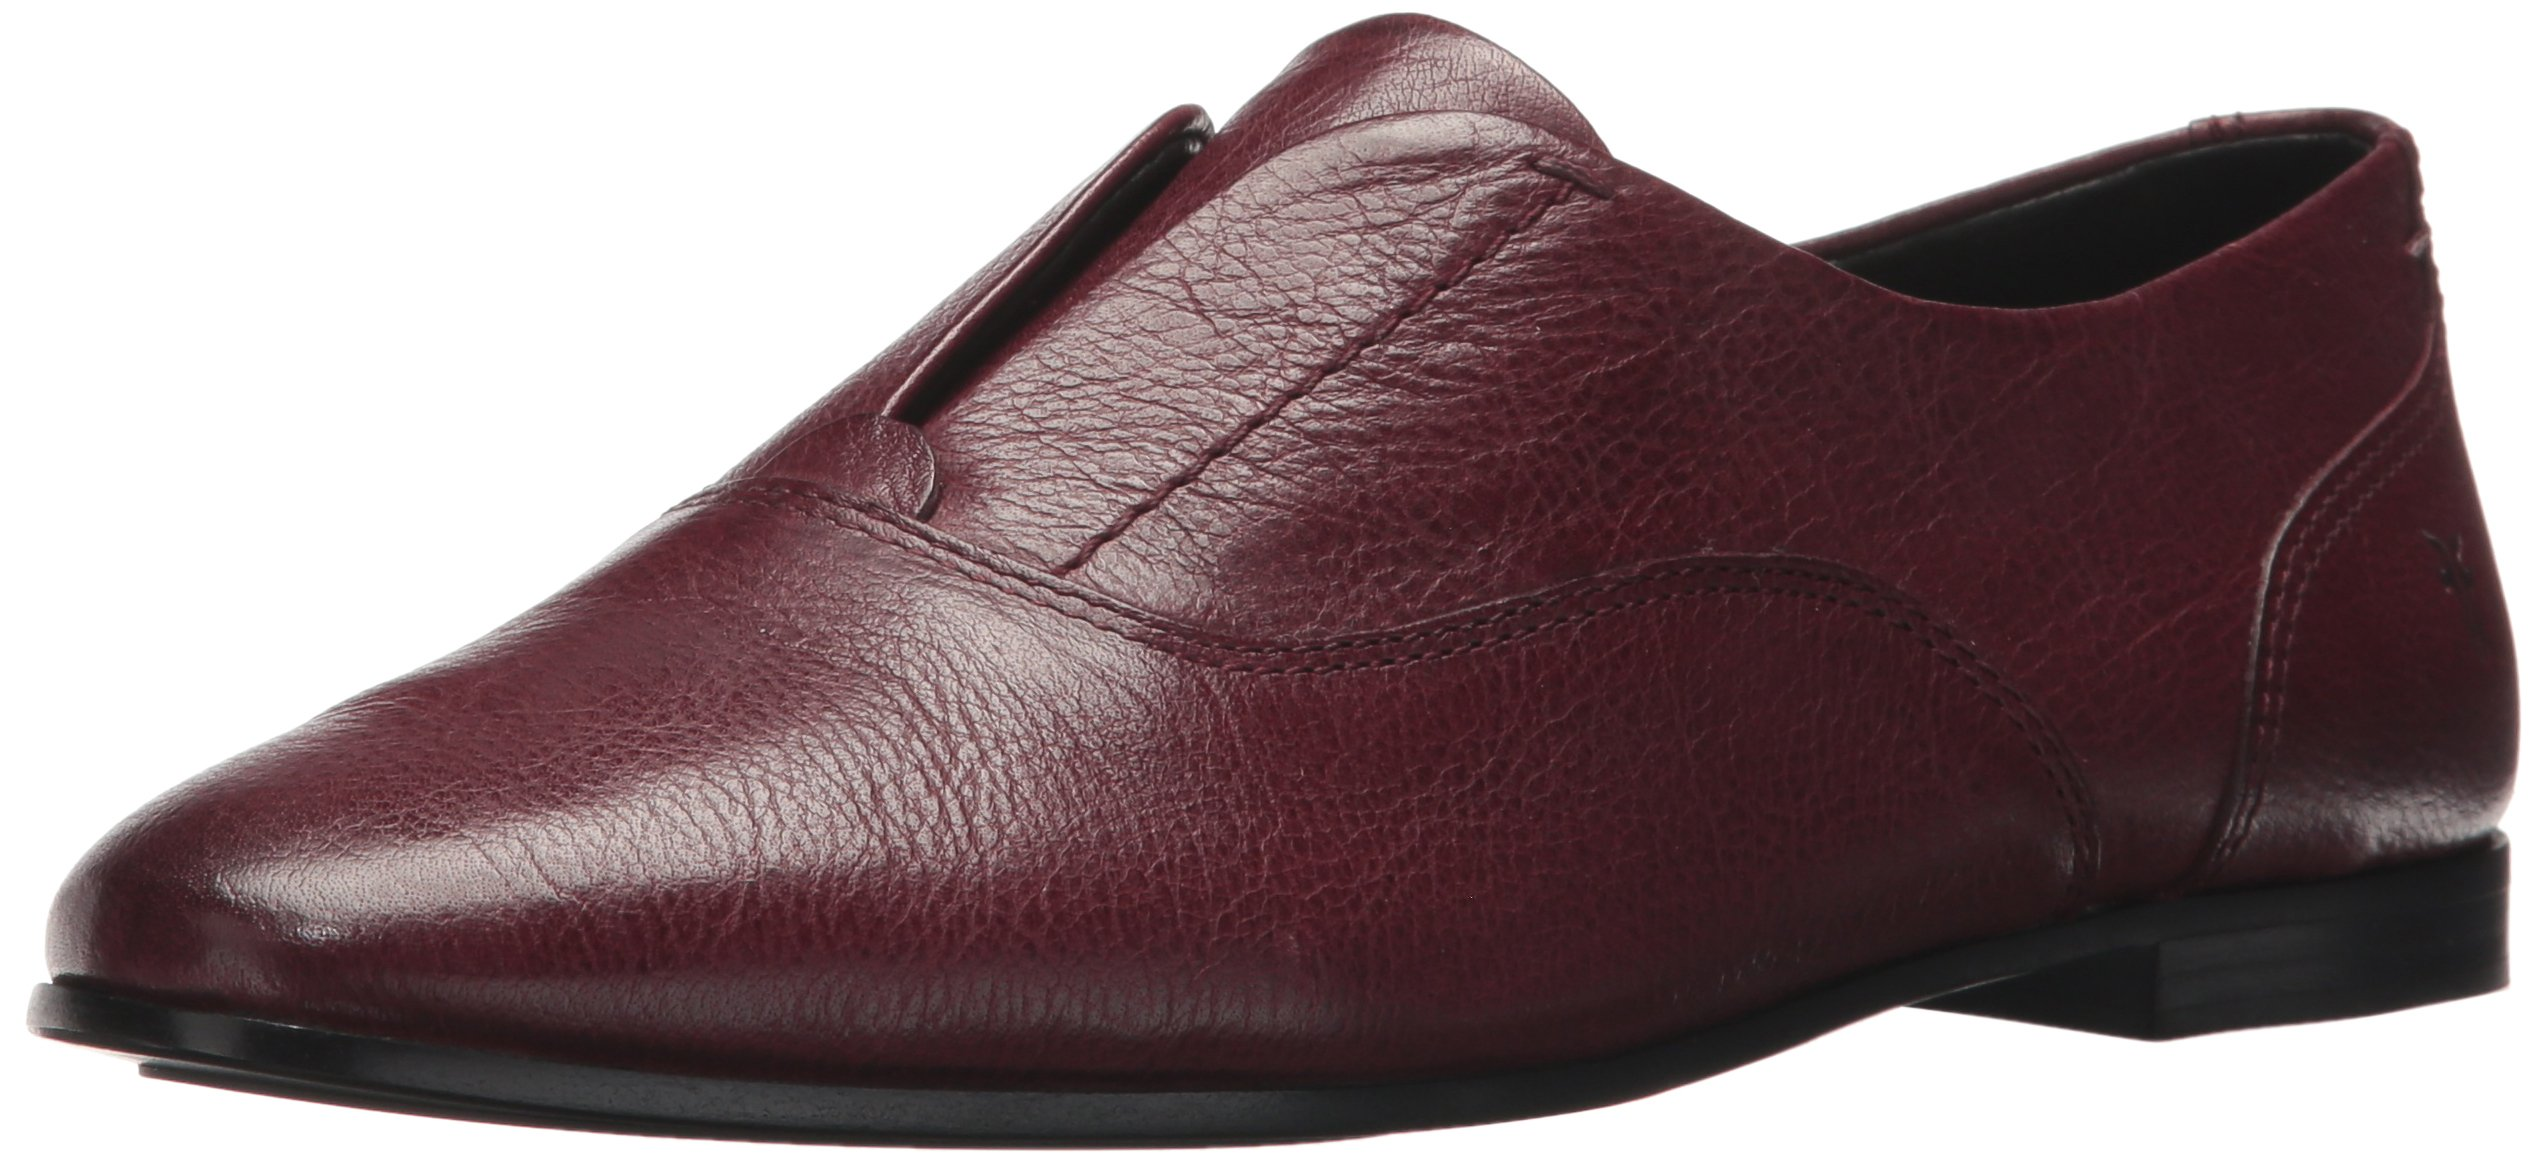 FRYE Women's Terri Slip-on Loafer, Wine, 10 M US